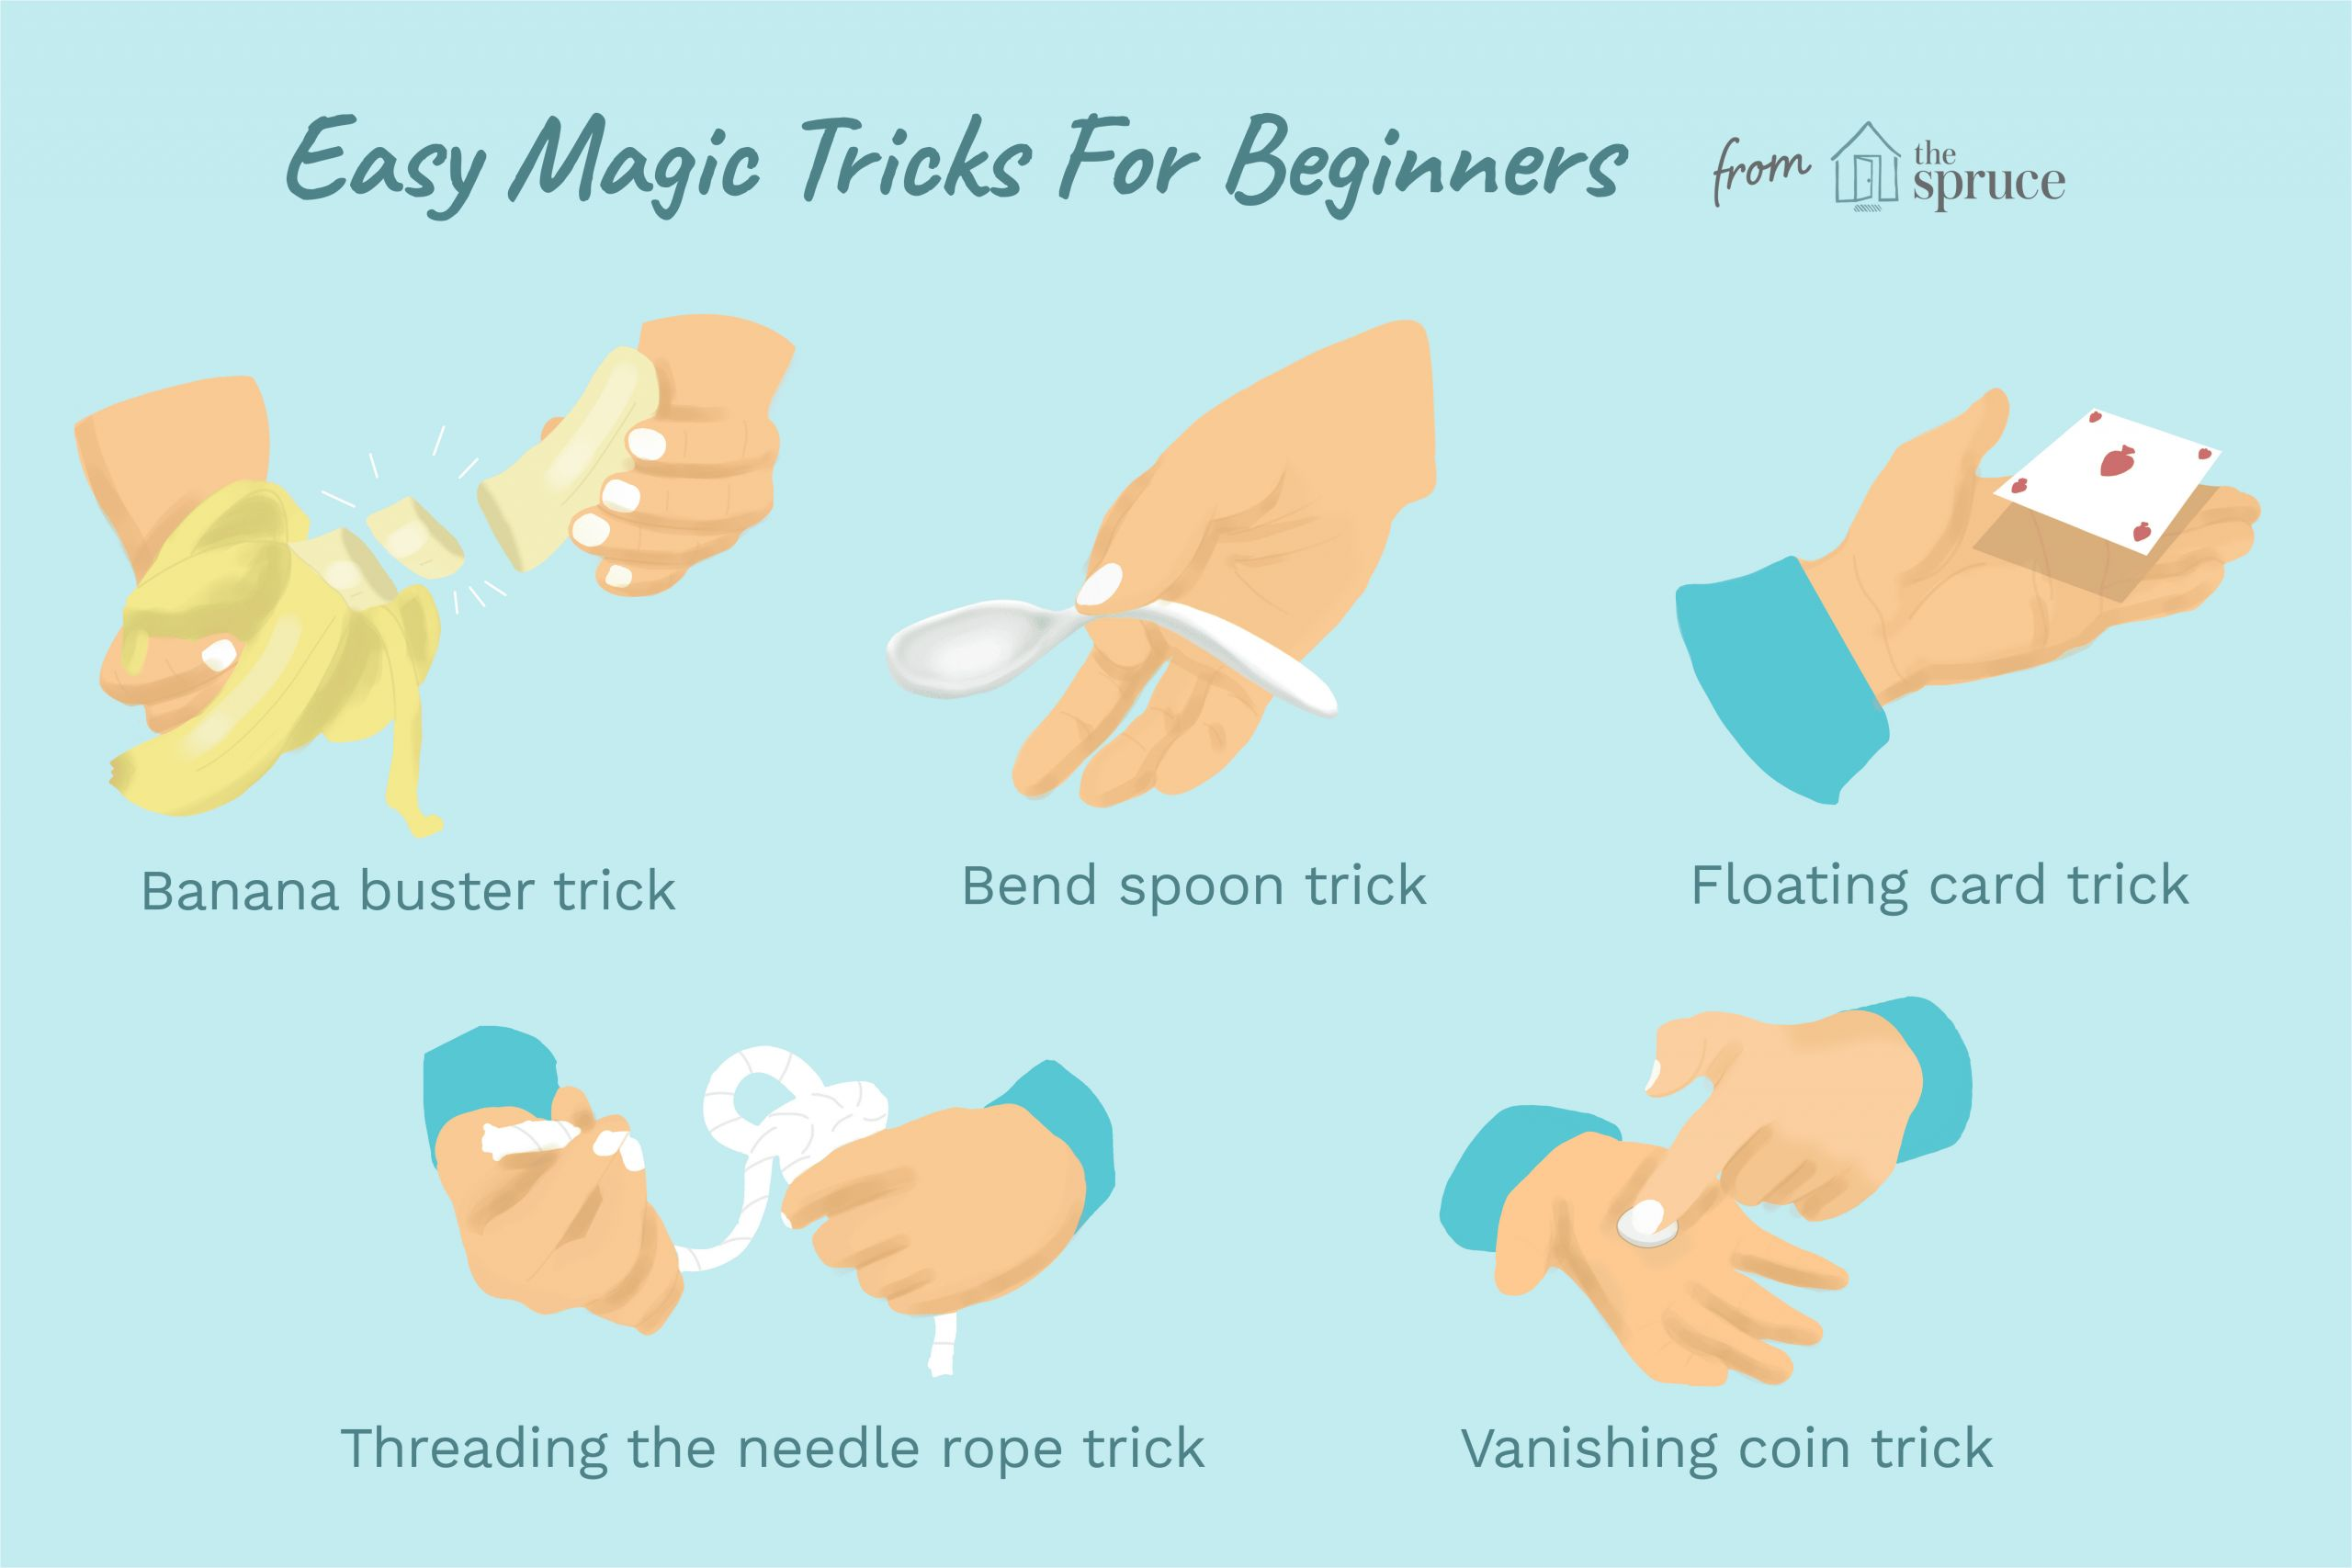 Learn Easy Card Tricks for Beginners Easy Magic Tricks for Kids and Beginners